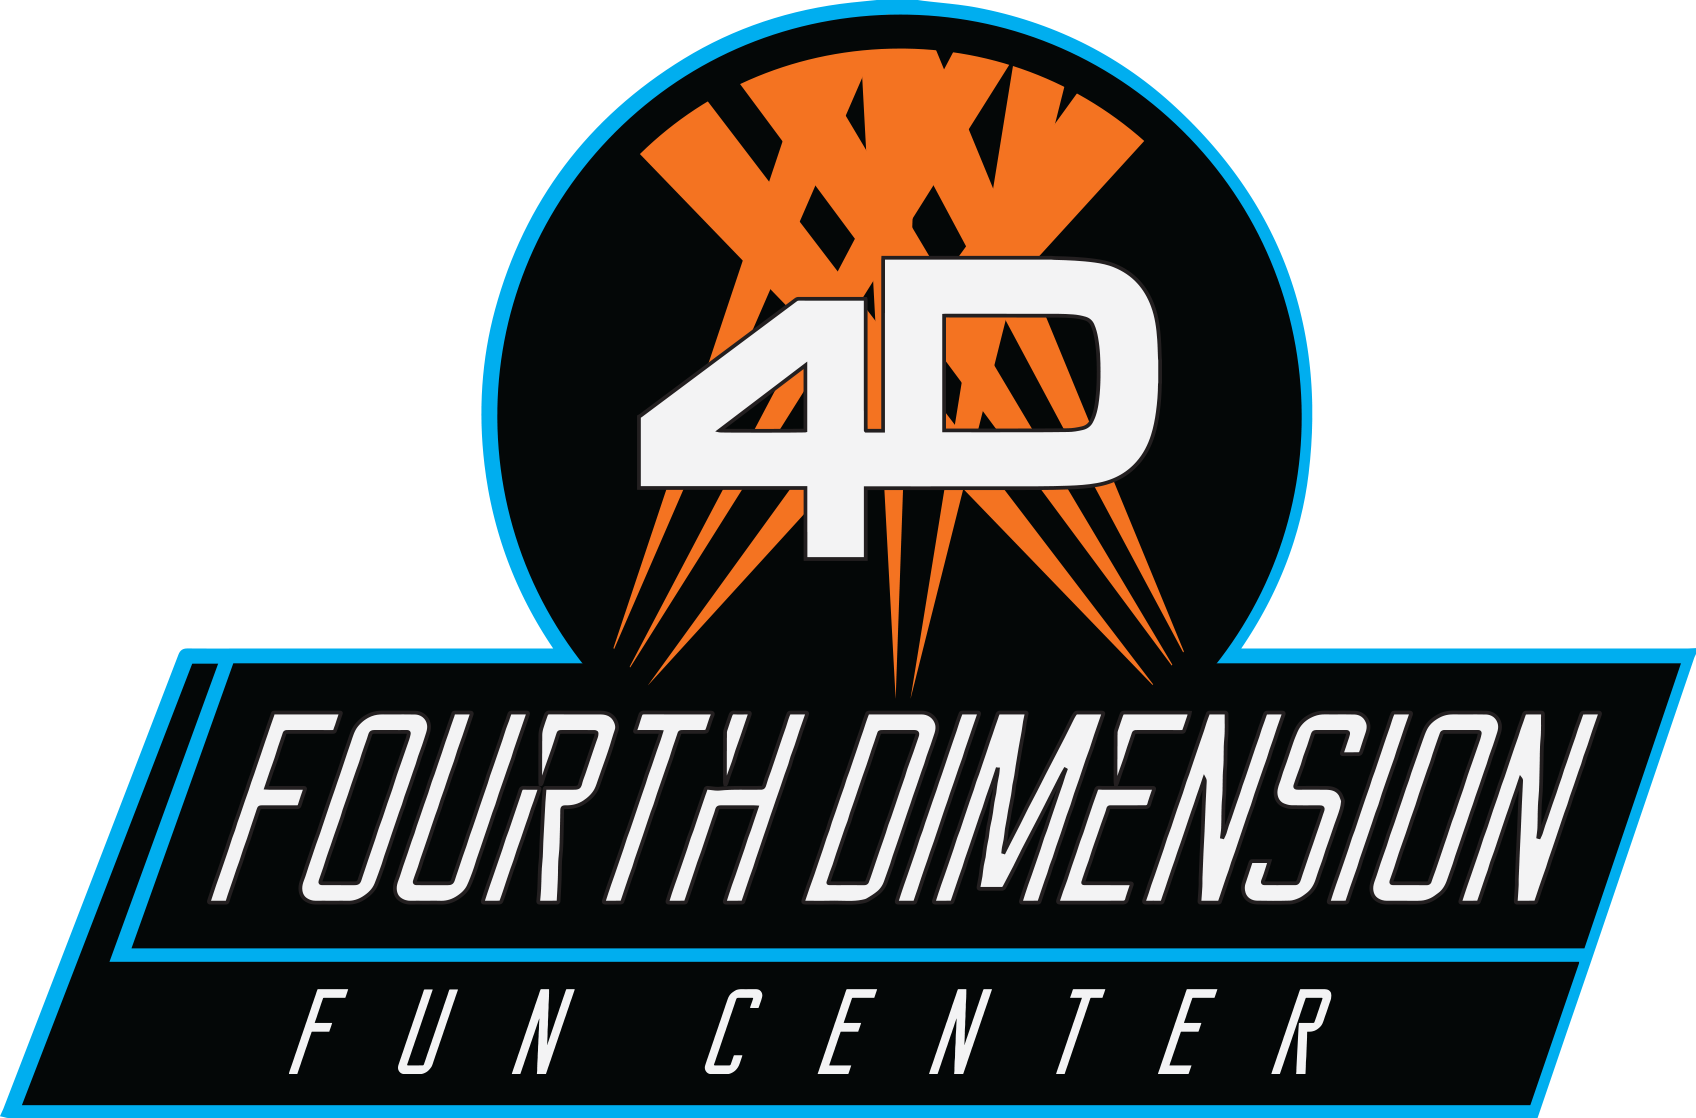 Fourth Dimension Fun Center Logo